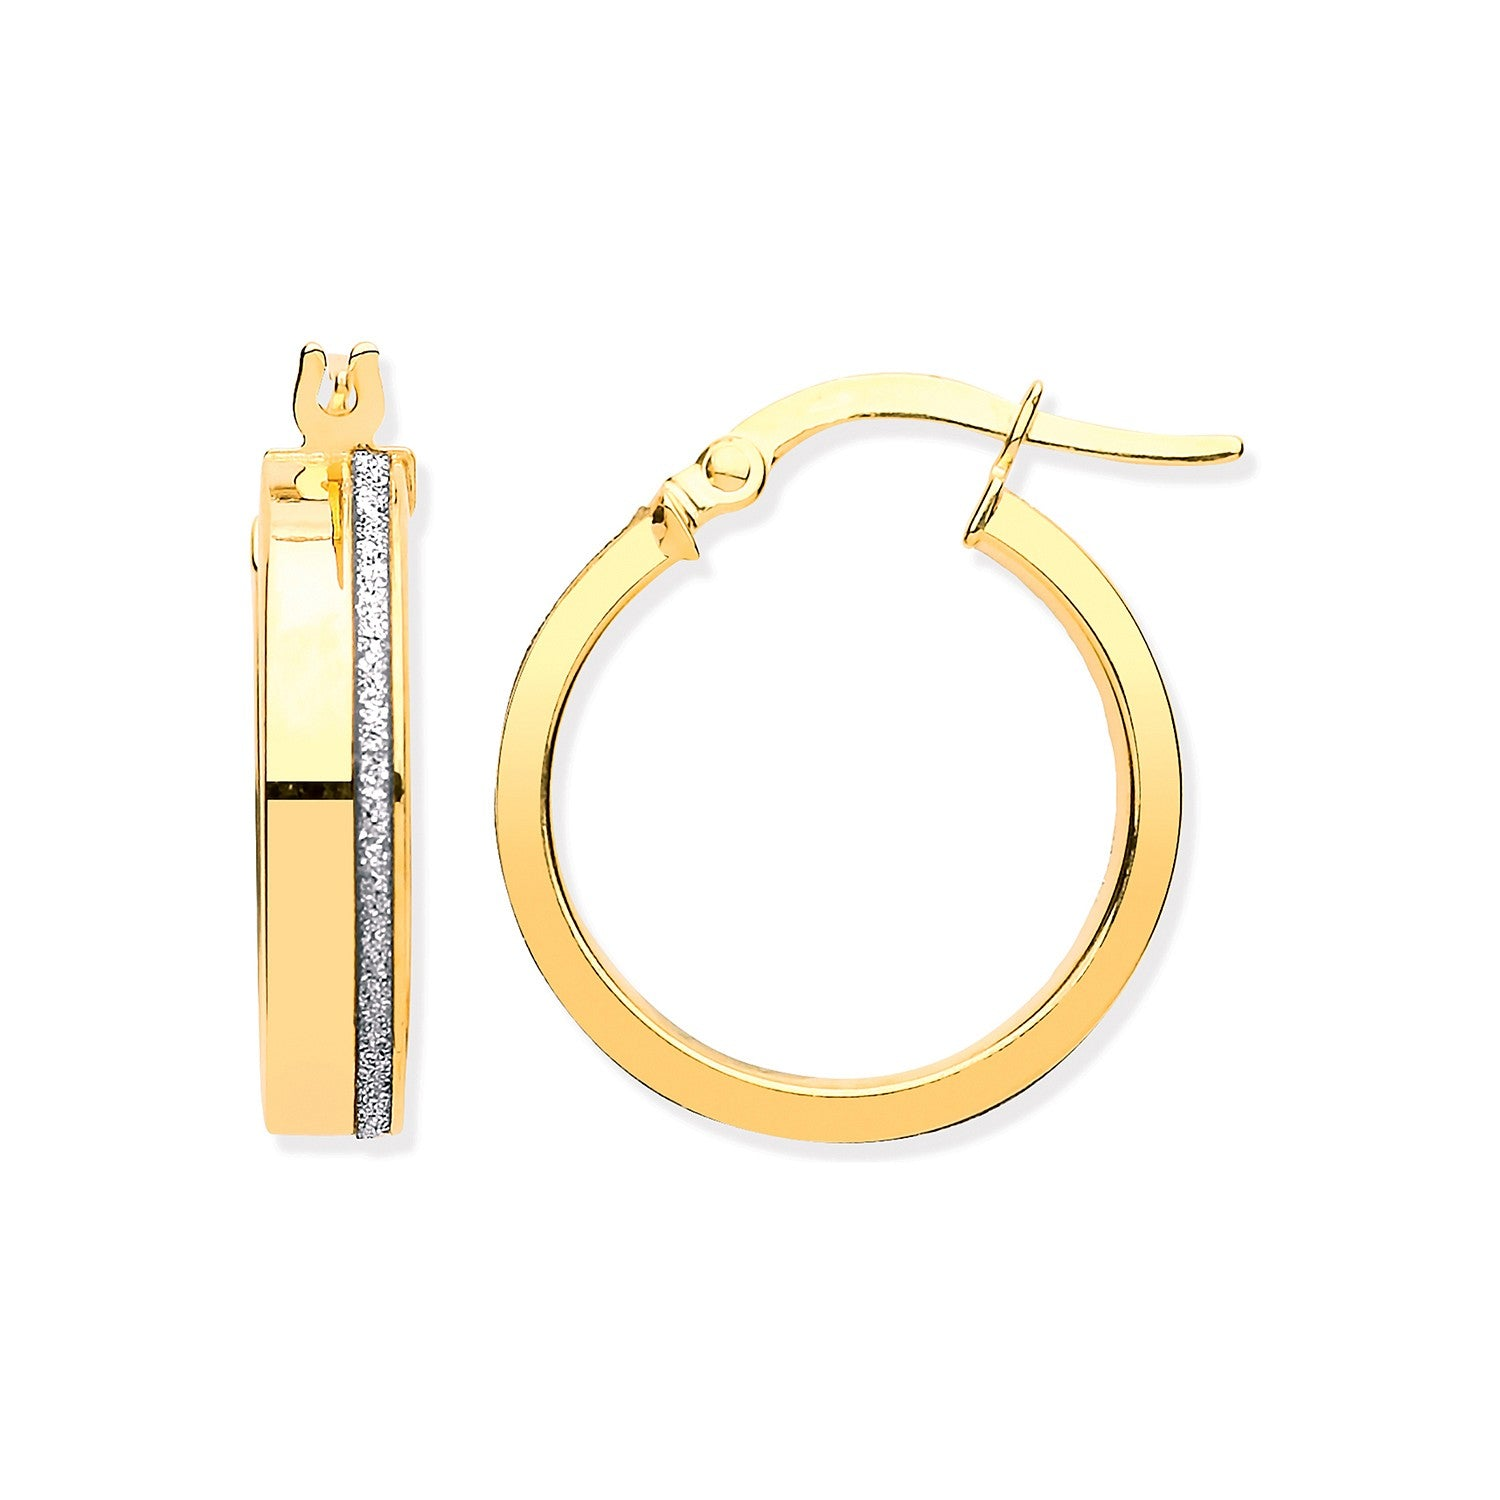 Y/G Plain & Moondust Hollow Hoop Earrings